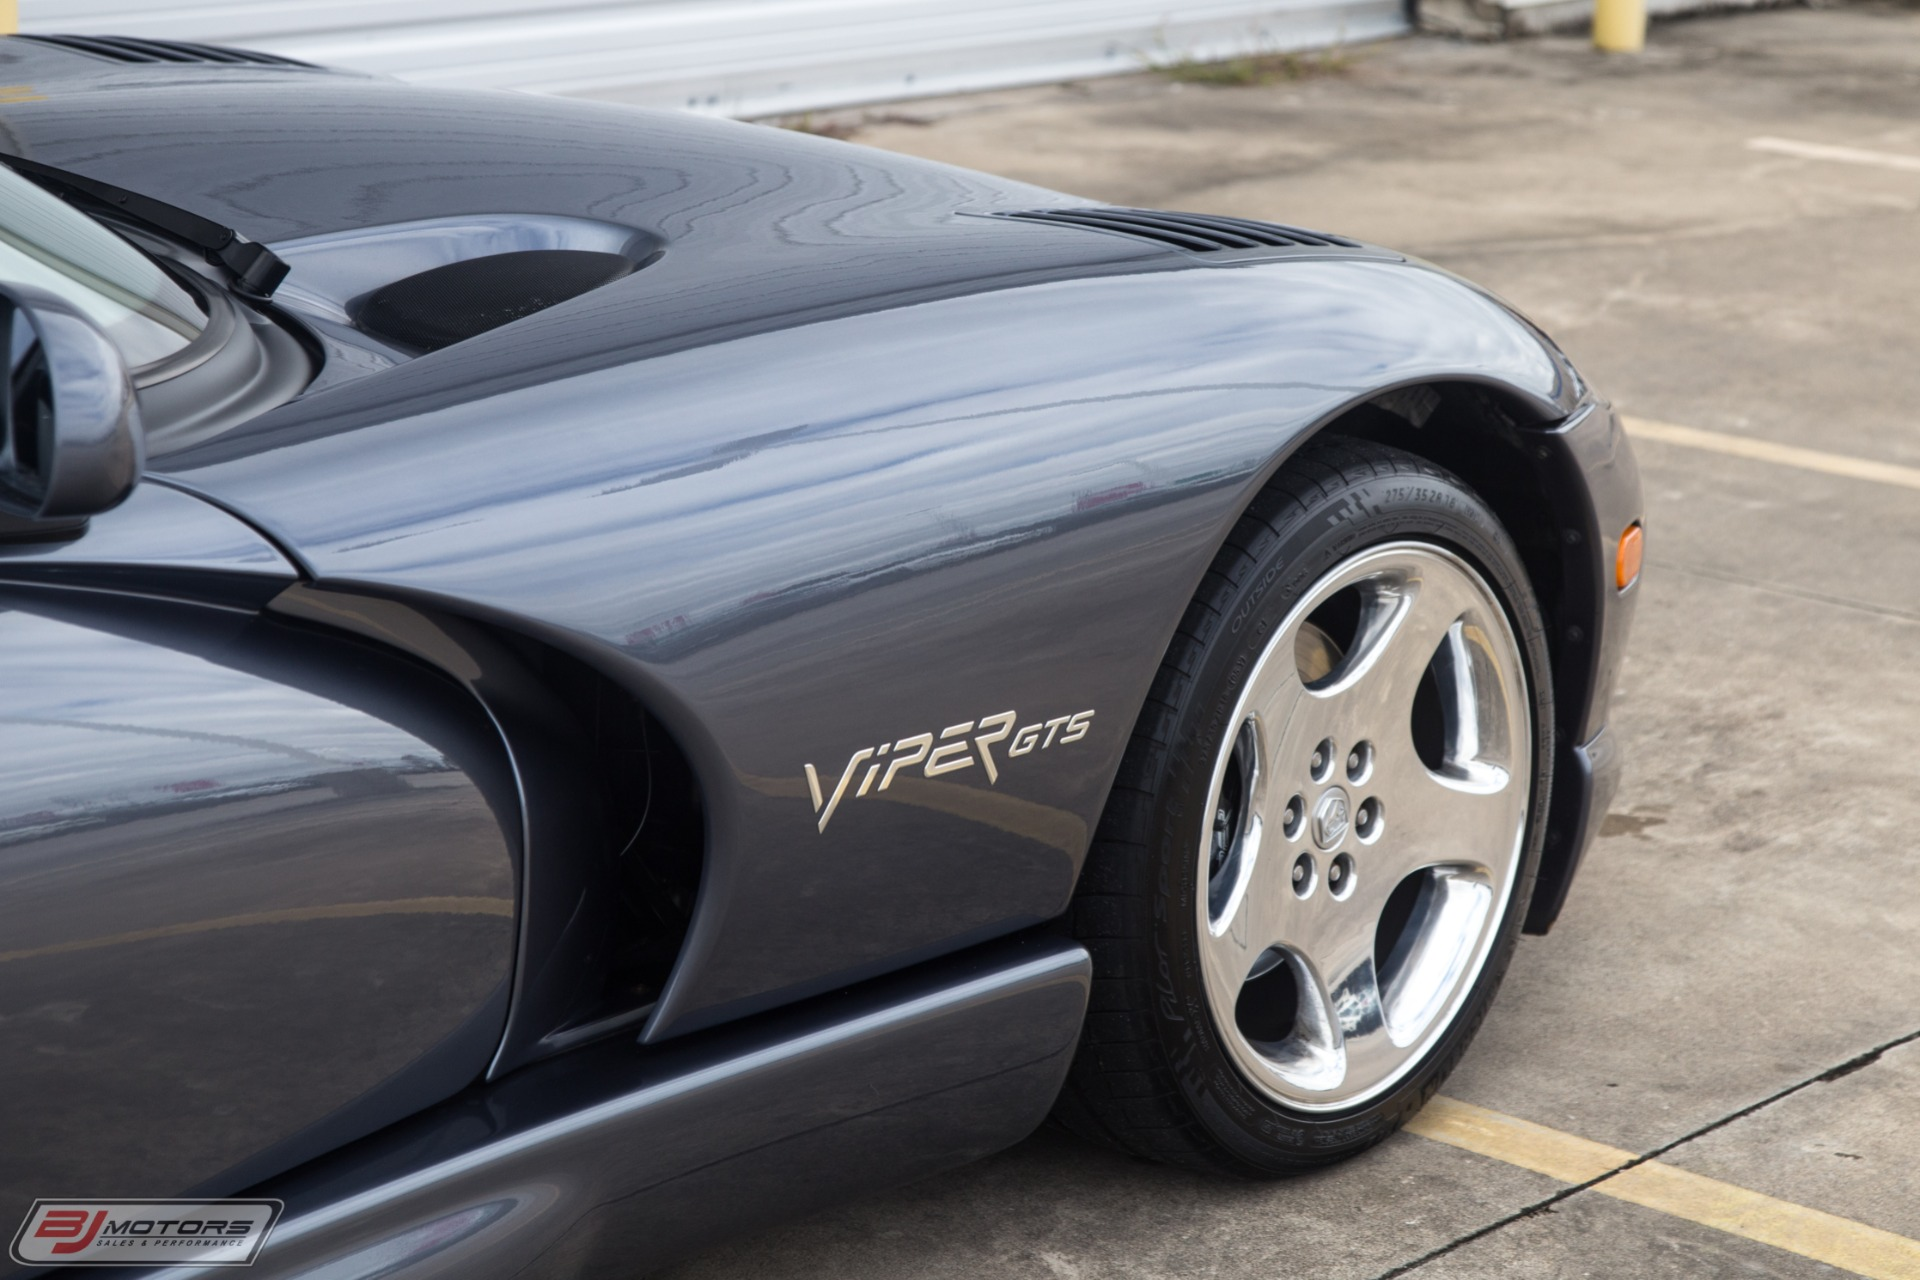 Used 2000 Dodge Viper GTS Steel Gray 1 Year Color For Sale ...